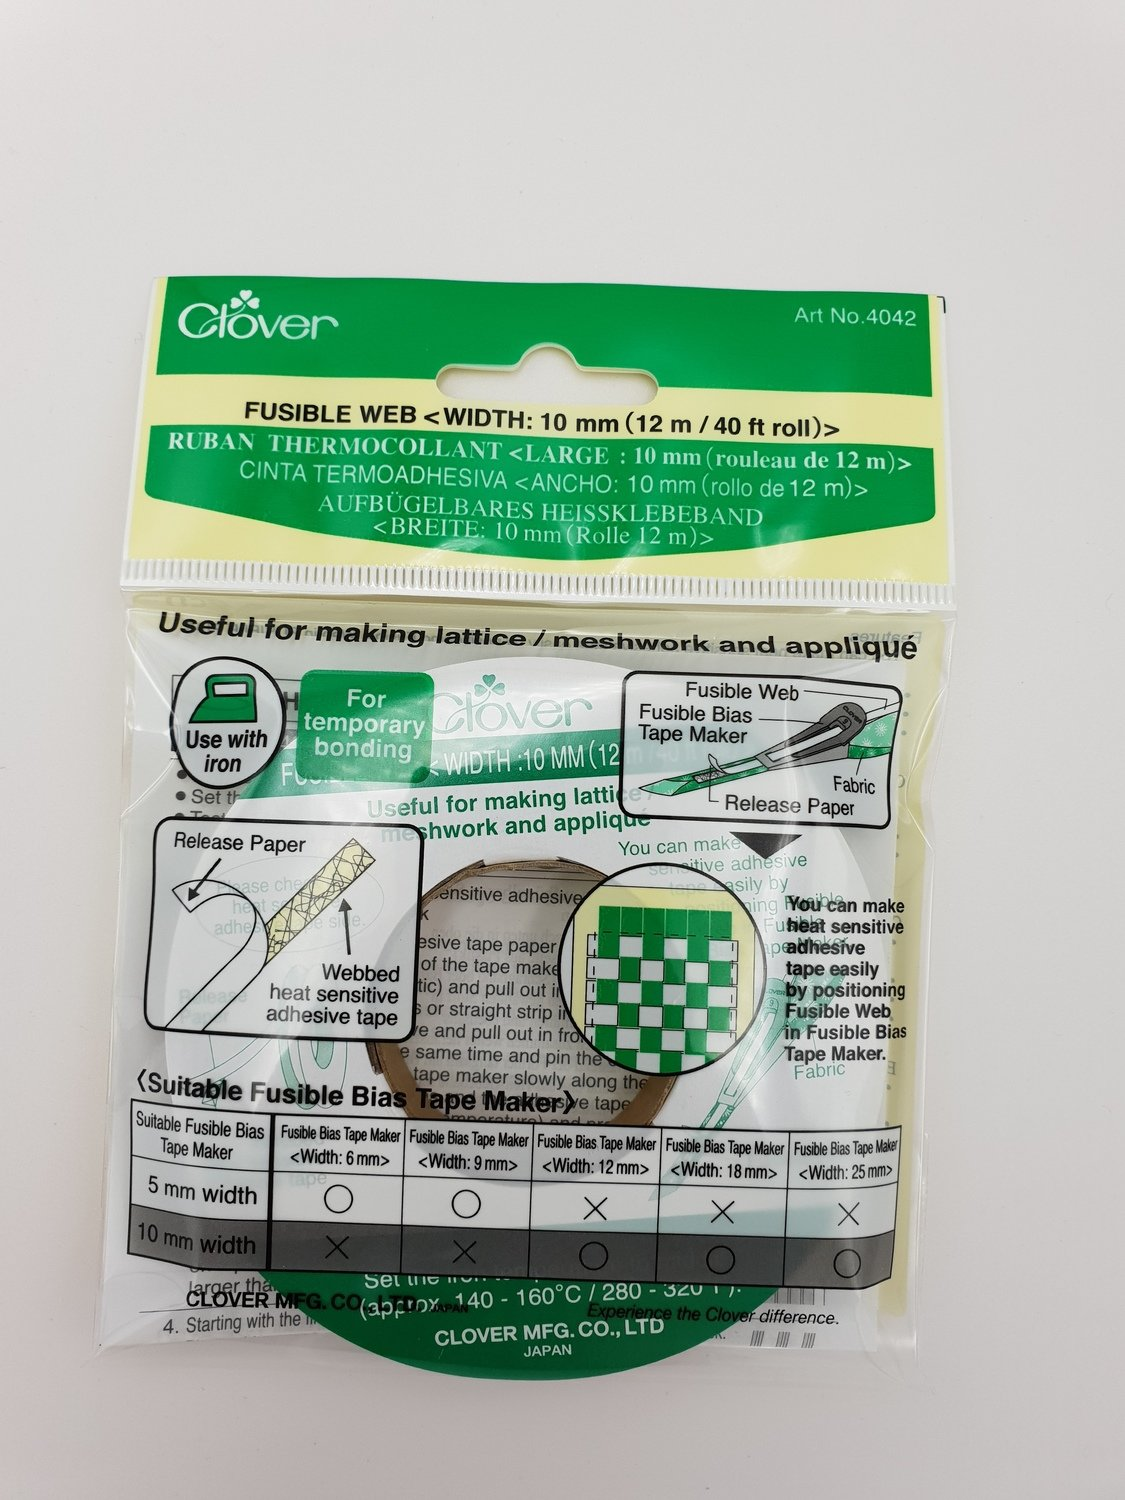 Clover Fusible Web 10 mm